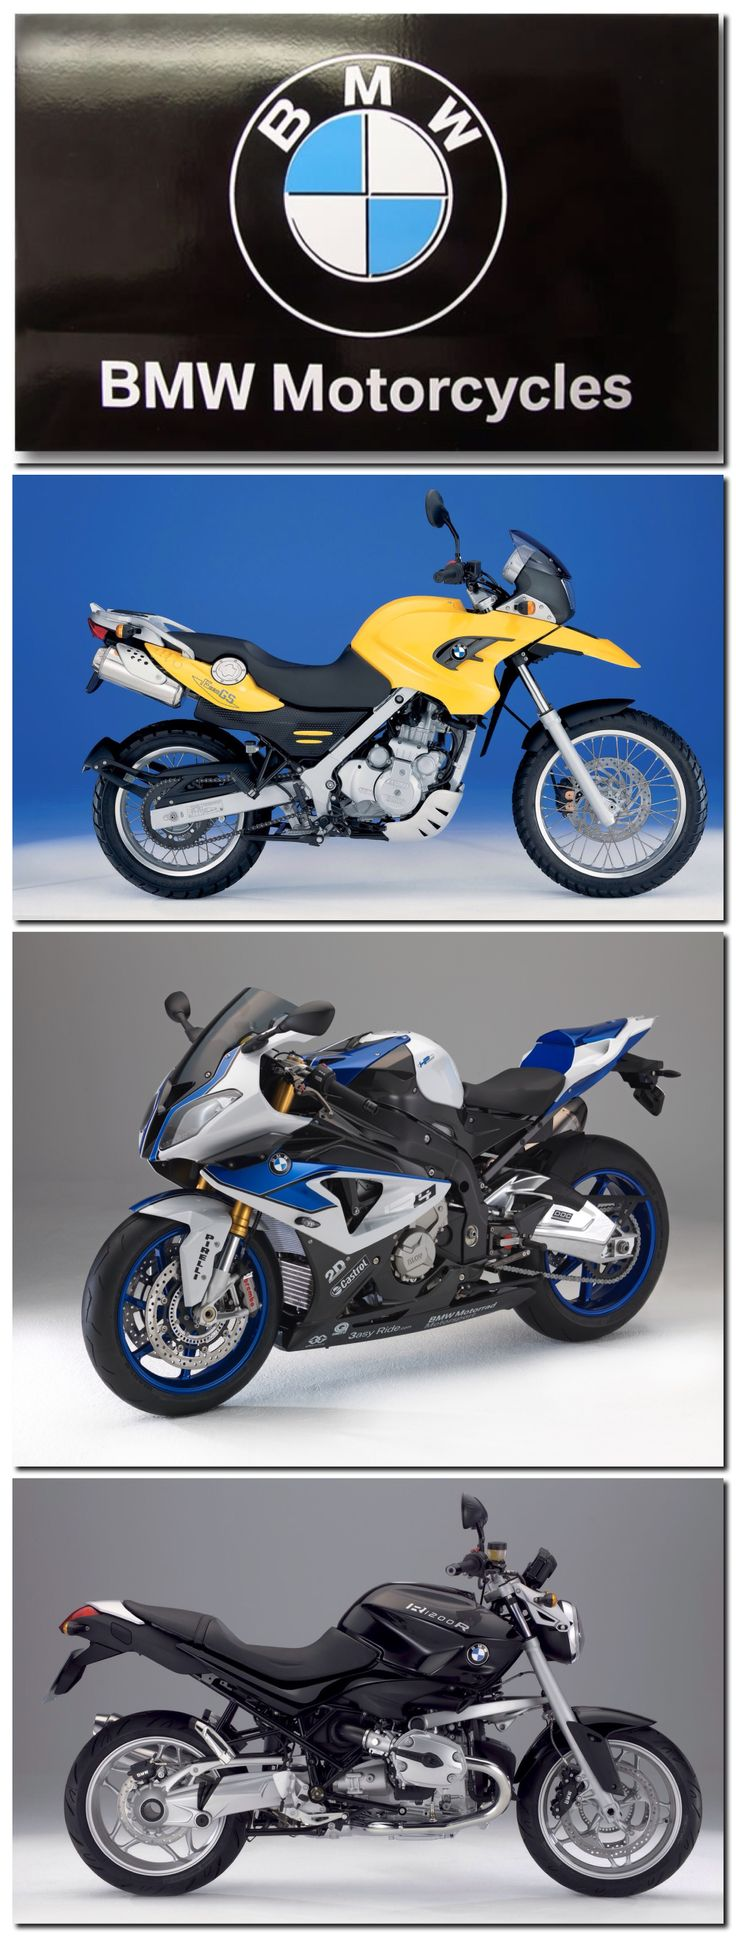 66 Best Bmw Motorcycles Images On Pinterest Car Motorcycles And